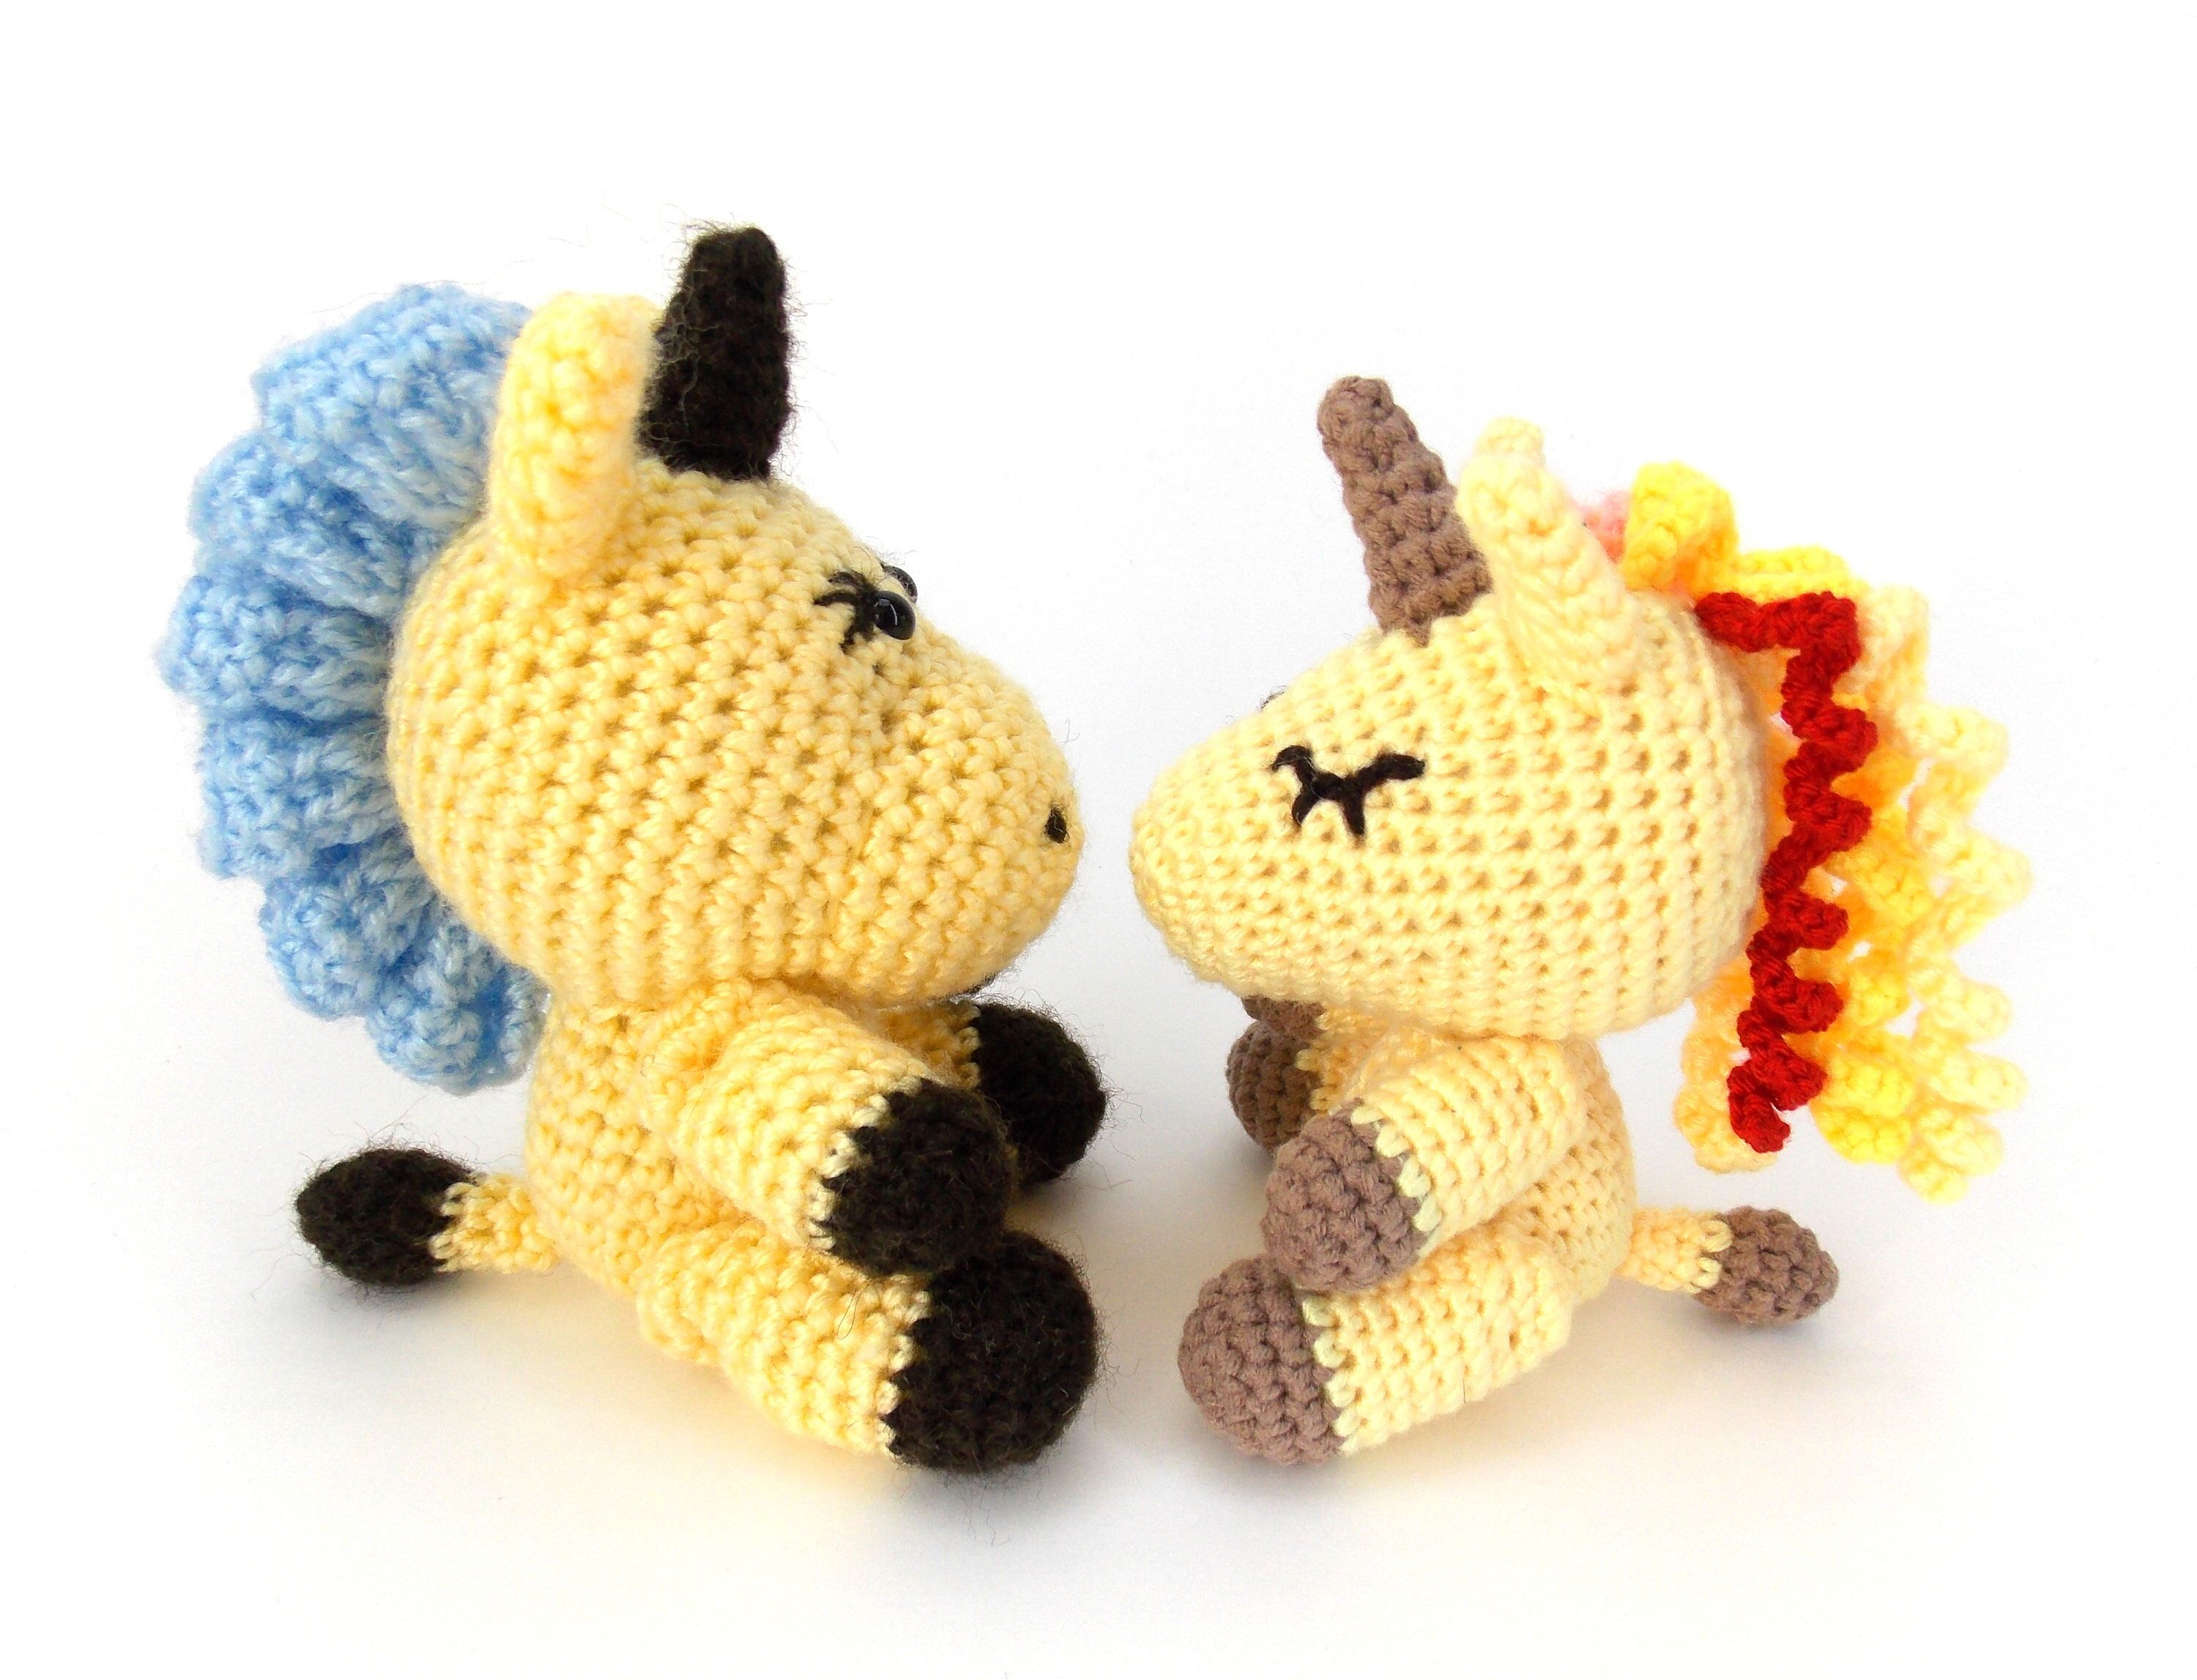 Knitted unicorn, little unicorns, magic horse, crochet unicorn, horse toy, plush unicorn, pair of unicorns, knitted horse, unicorns in love #littleunicorn